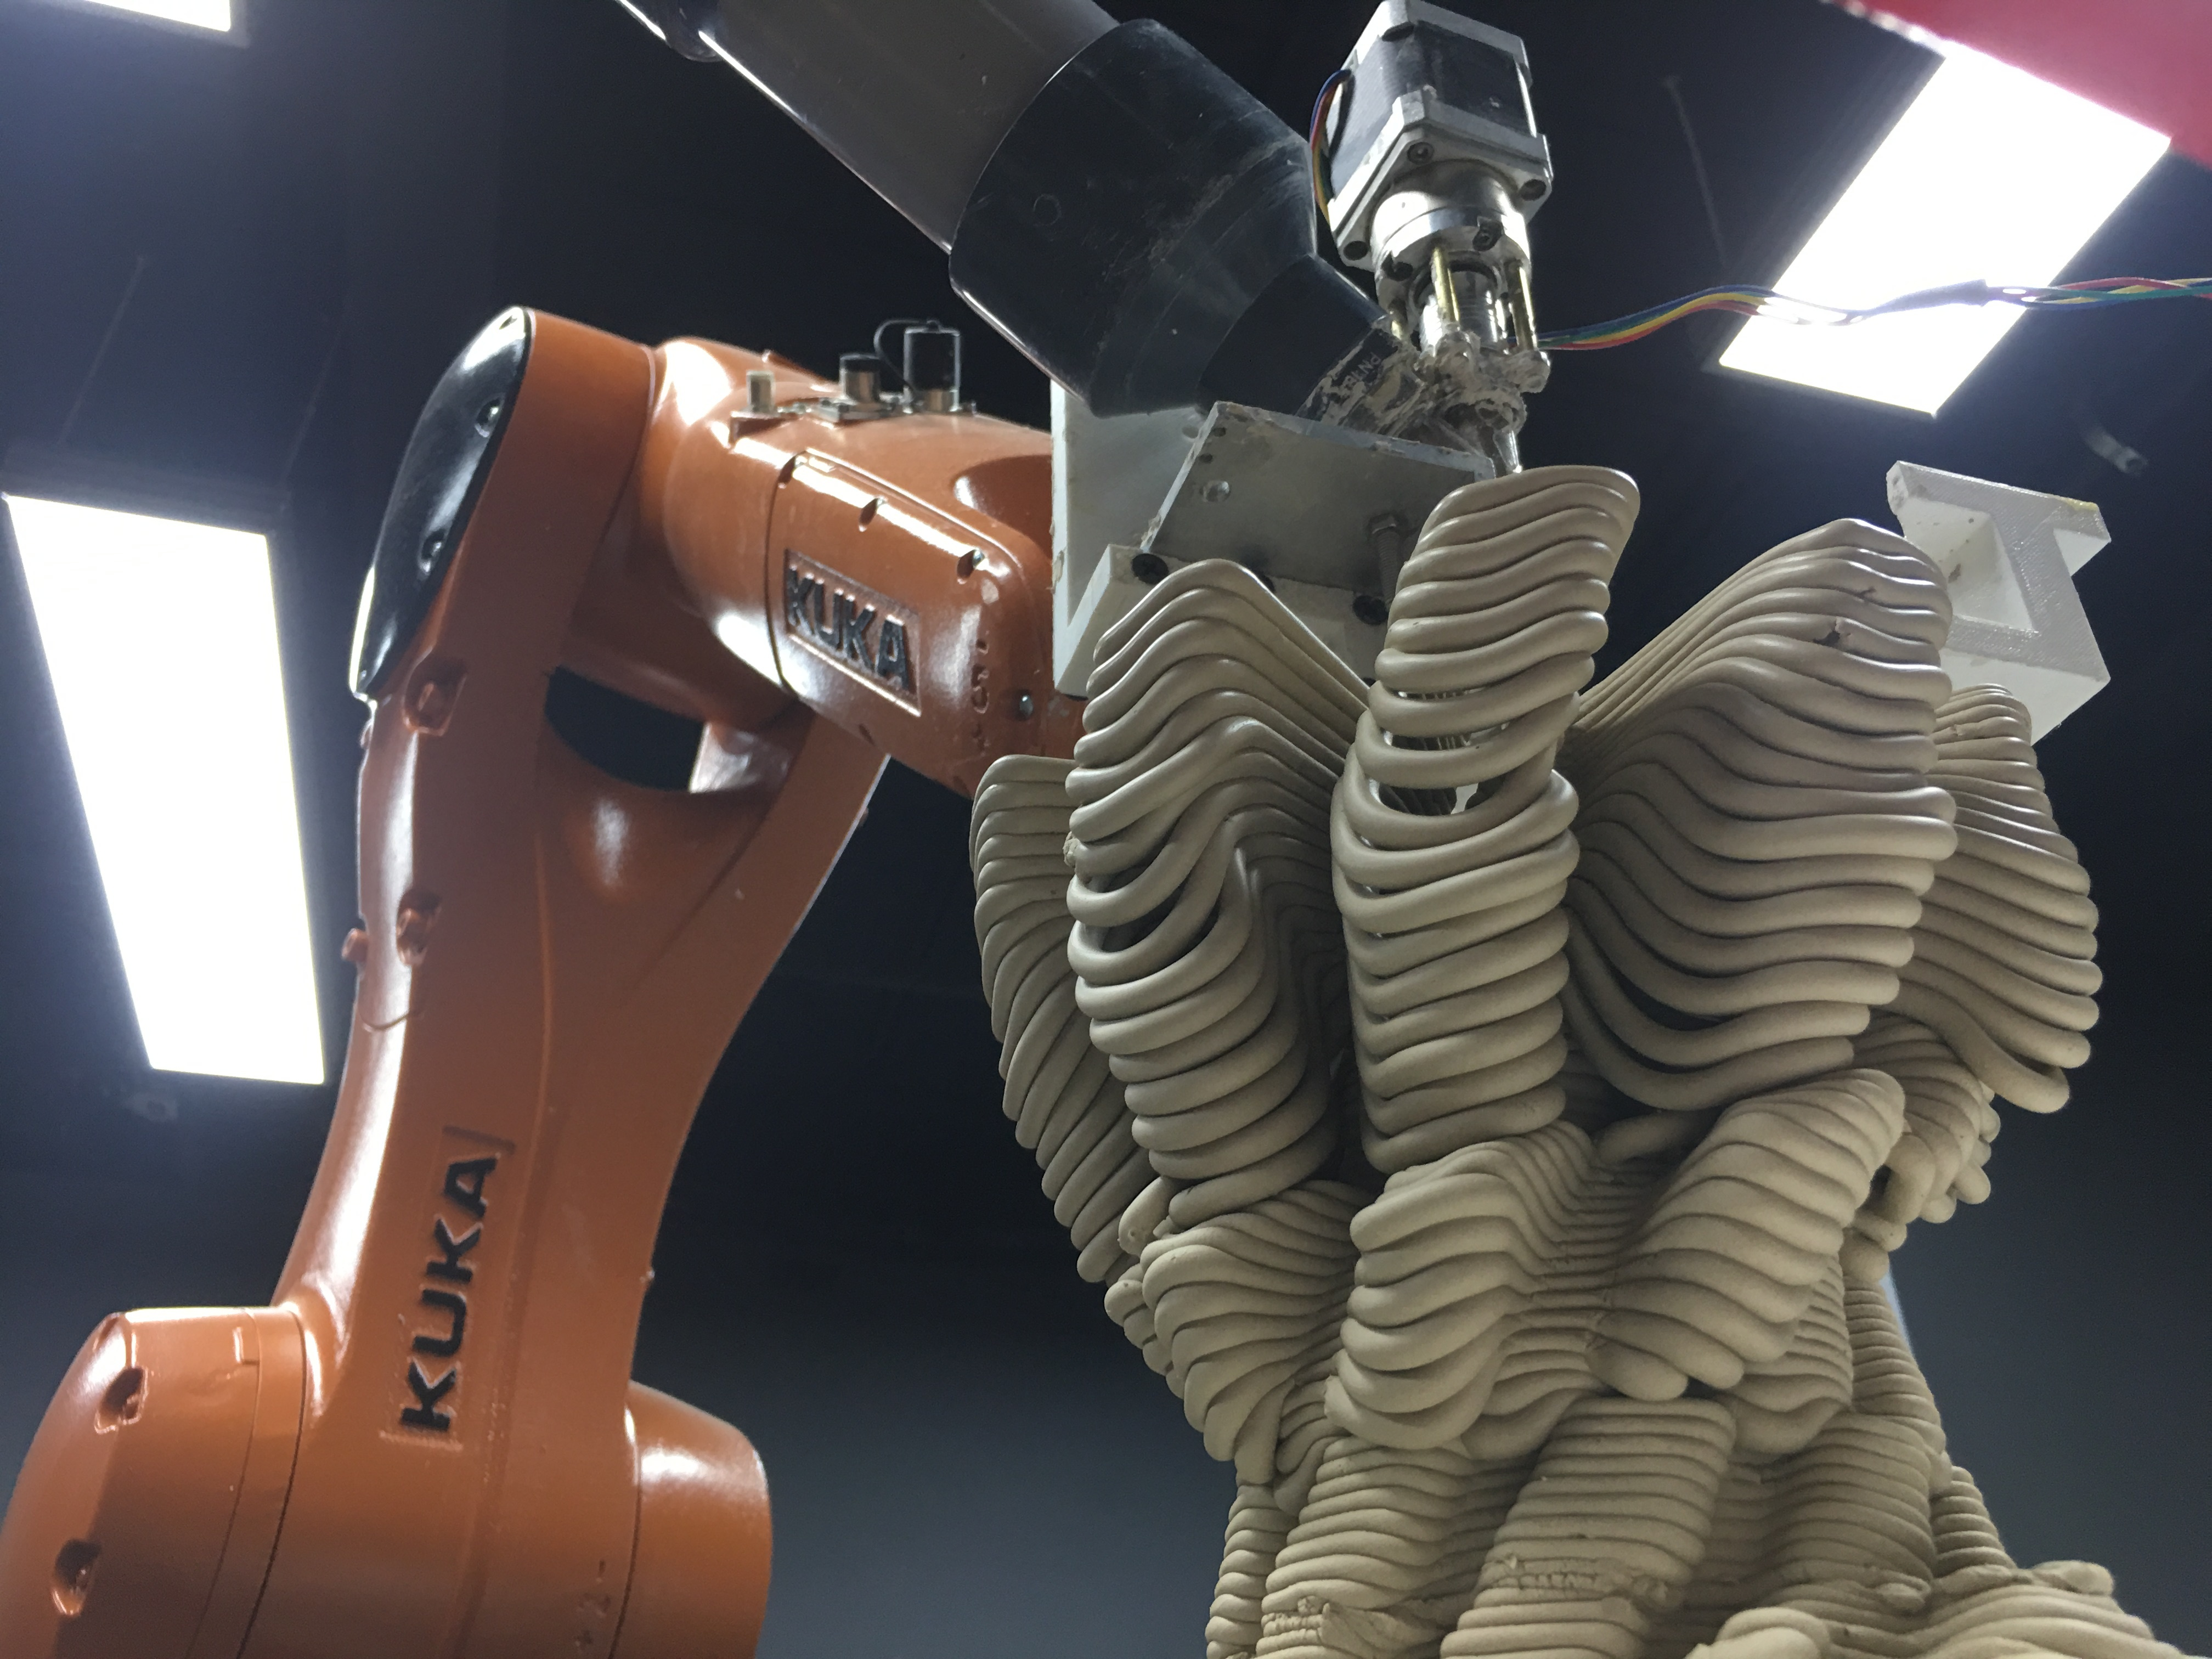 kuka robot arm 3d prints ceramic vessels